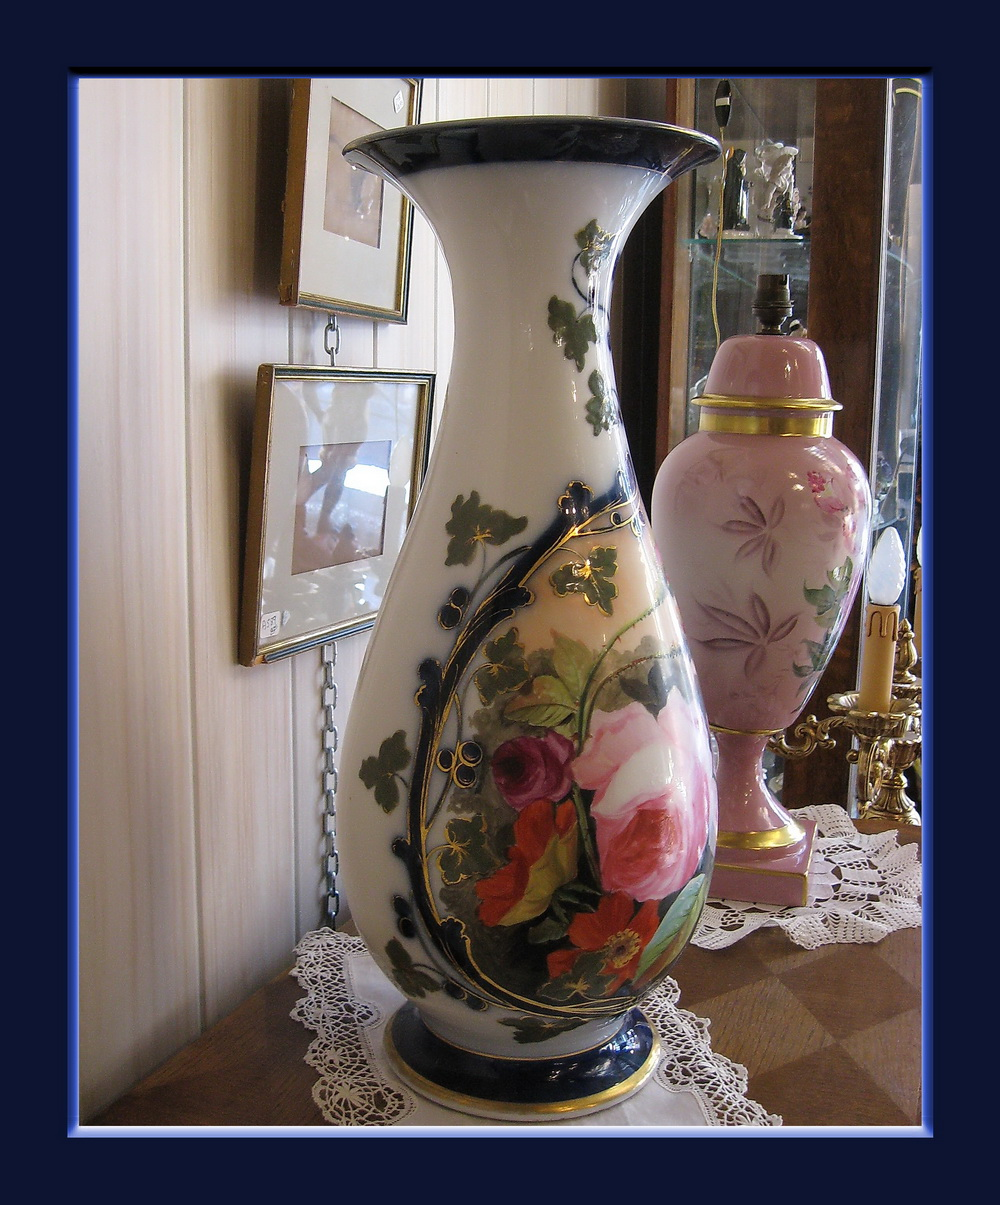 tres grand vase en porcelaine de valentine paris bayeux epoque xix siecle ebay. Black Bedroom Furniture Sets. Home Design Ideas